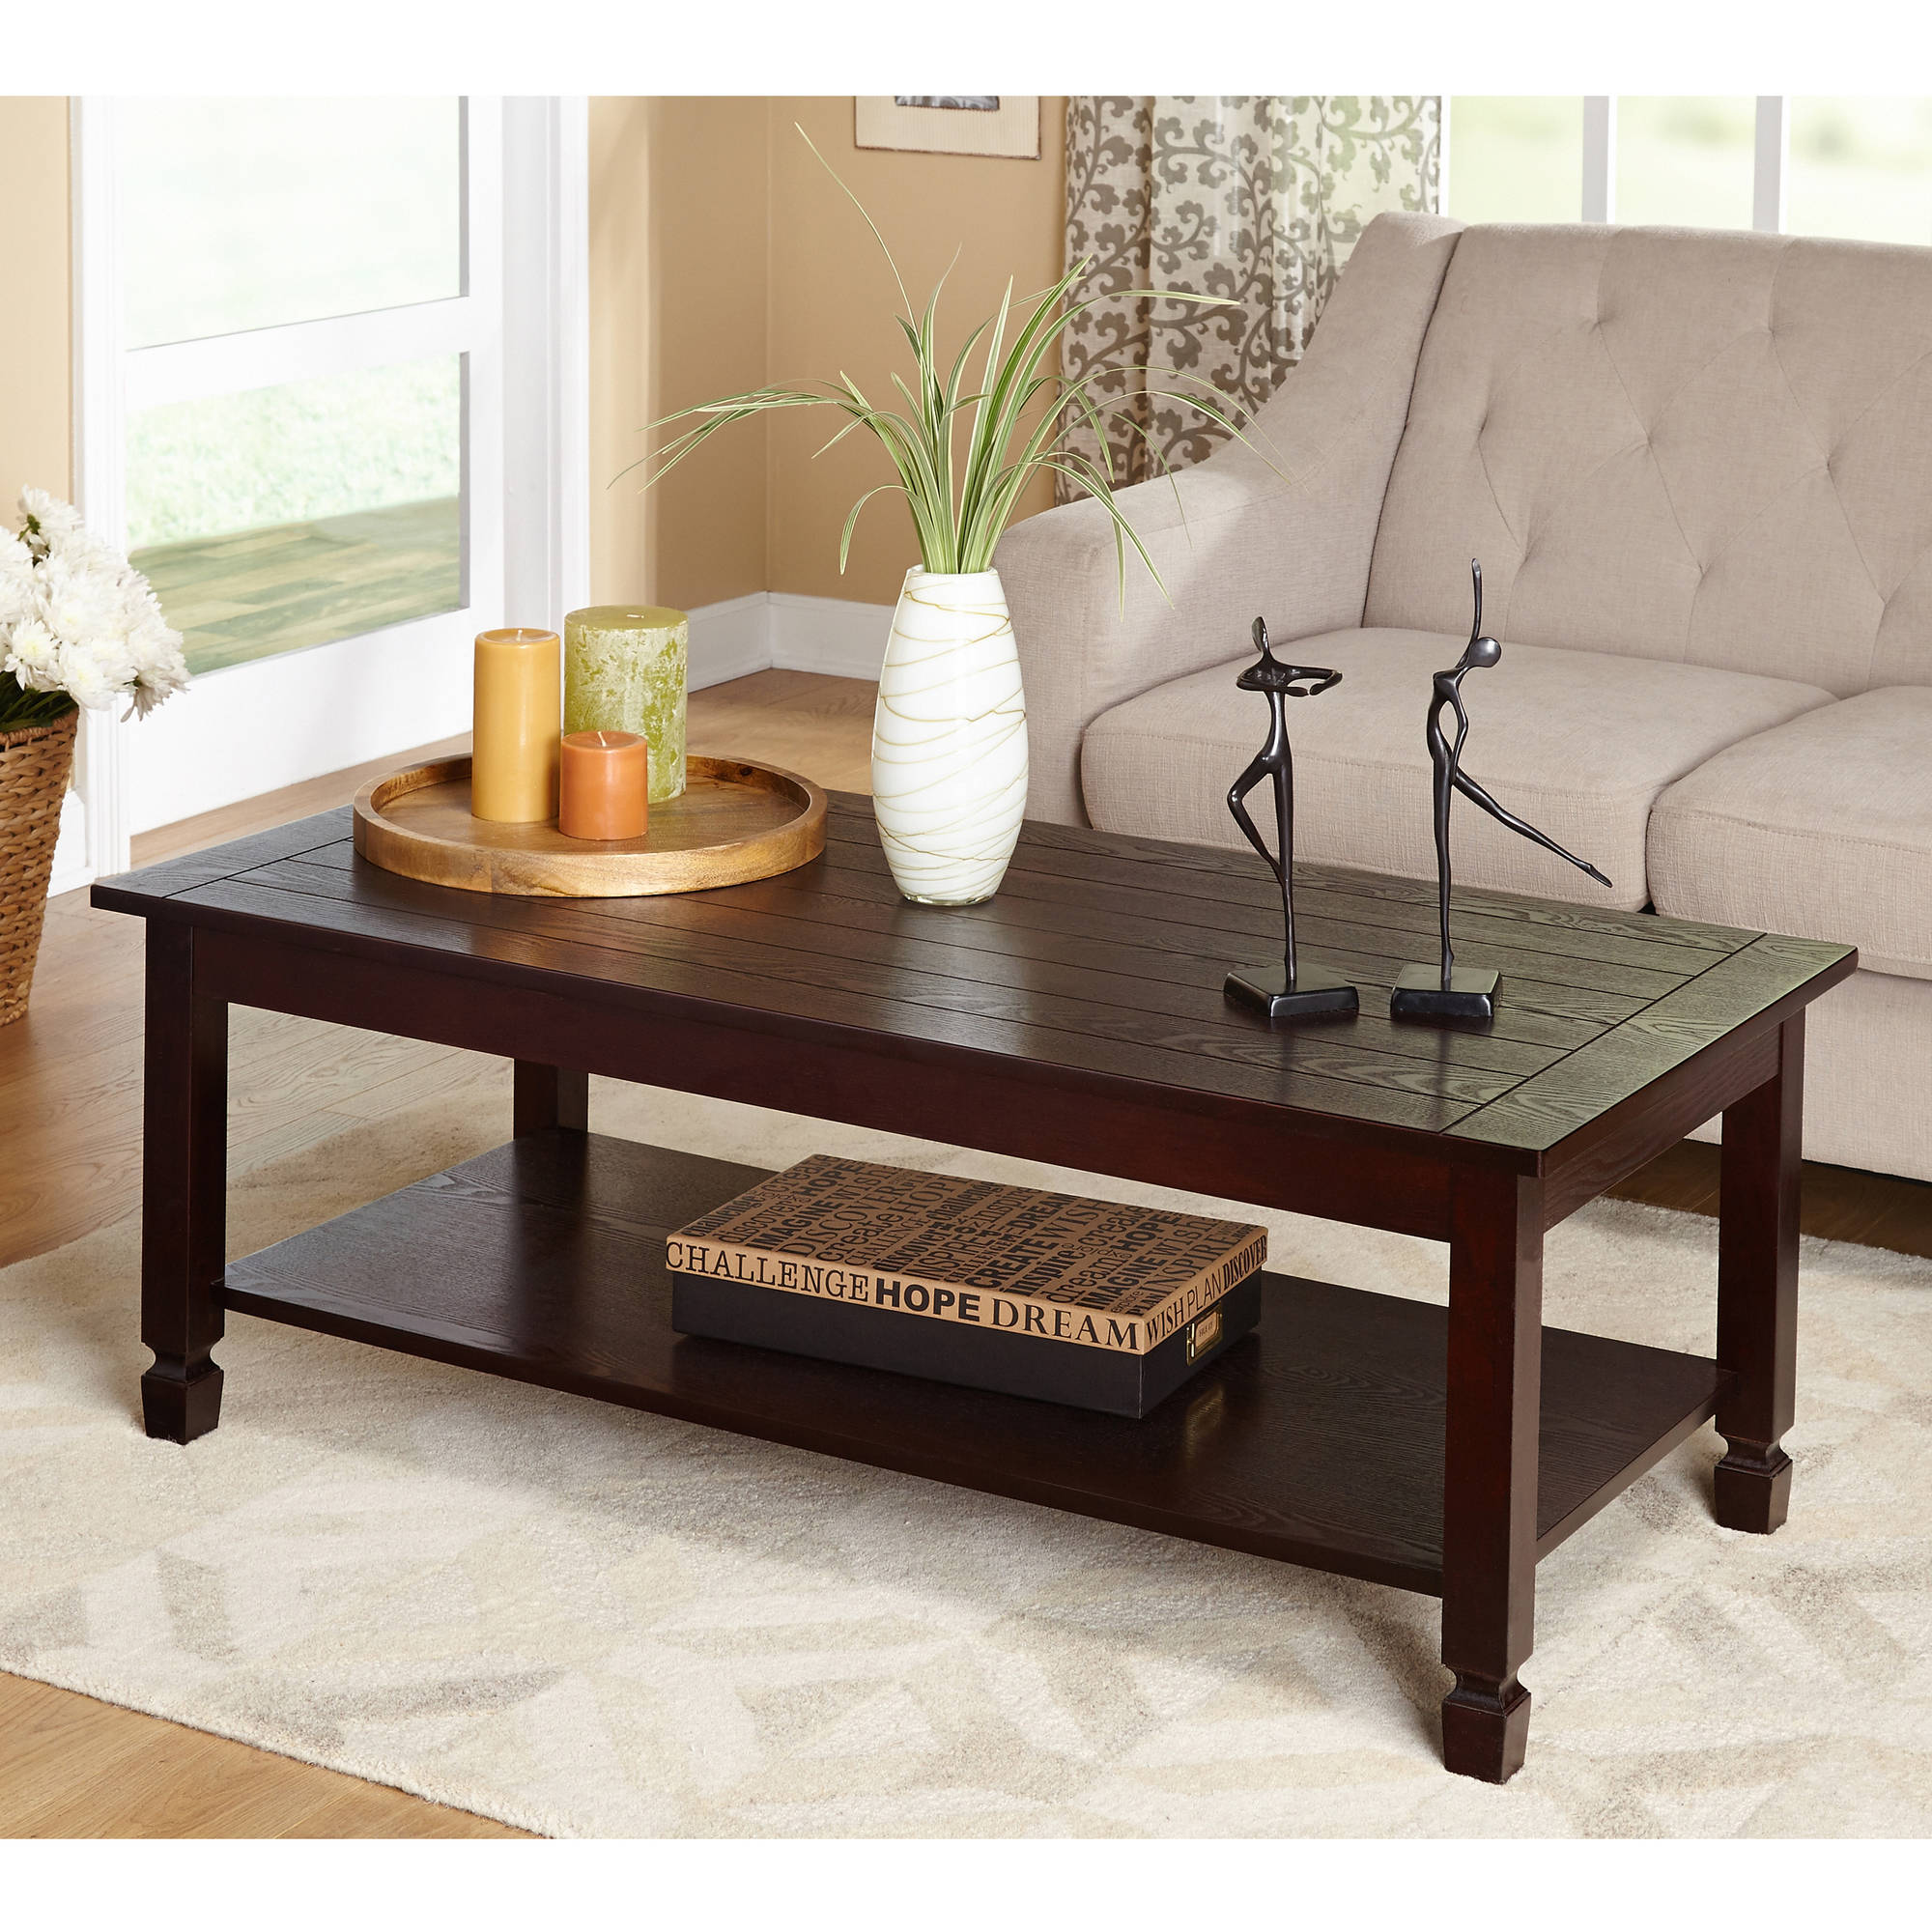 Zenith 3 Piece Cocktail and End Tables Value Bundle Espresso